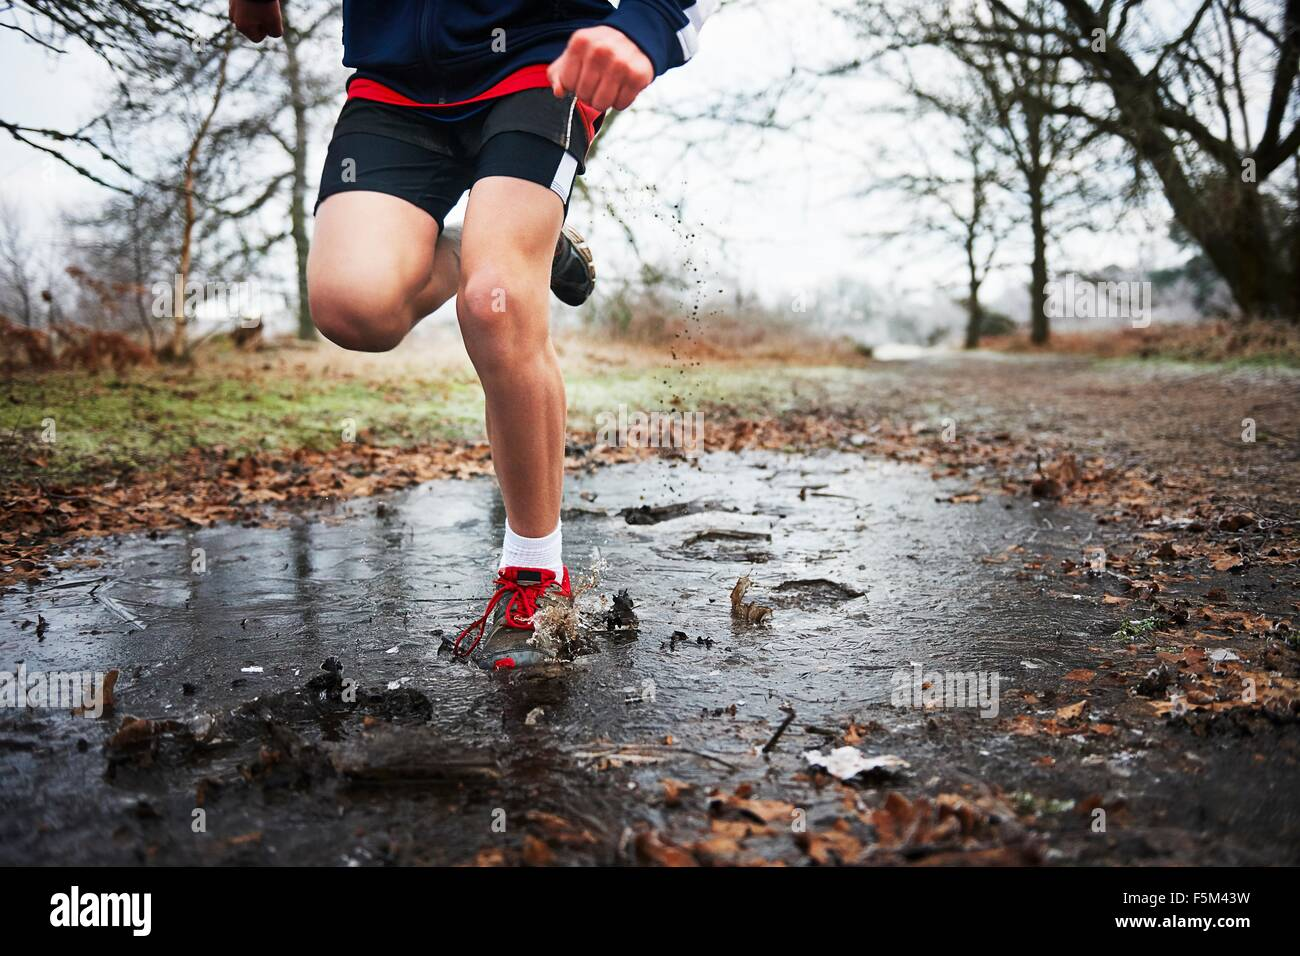 Front view of teenage boy running through puddle - Stock Image